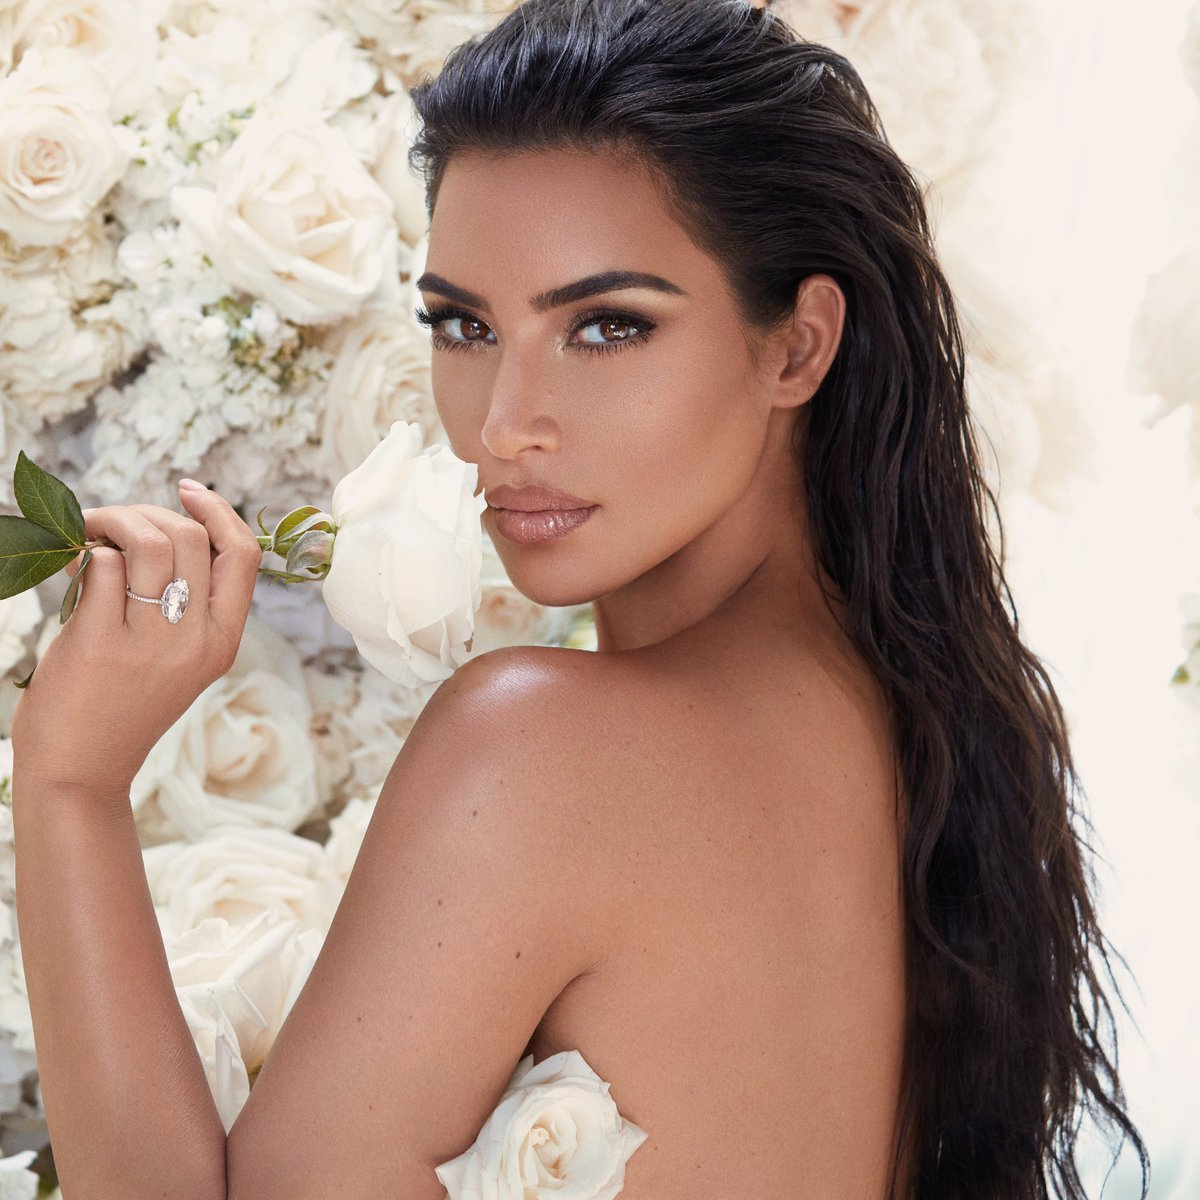 So excited to announce that the @kkwbeauty Mrs. West Collection inspired by my wedding day make up look created by @makeupbymario is being restocked for the first time since it launched and sold the out last year! https://t.co/nJFYUumjBs